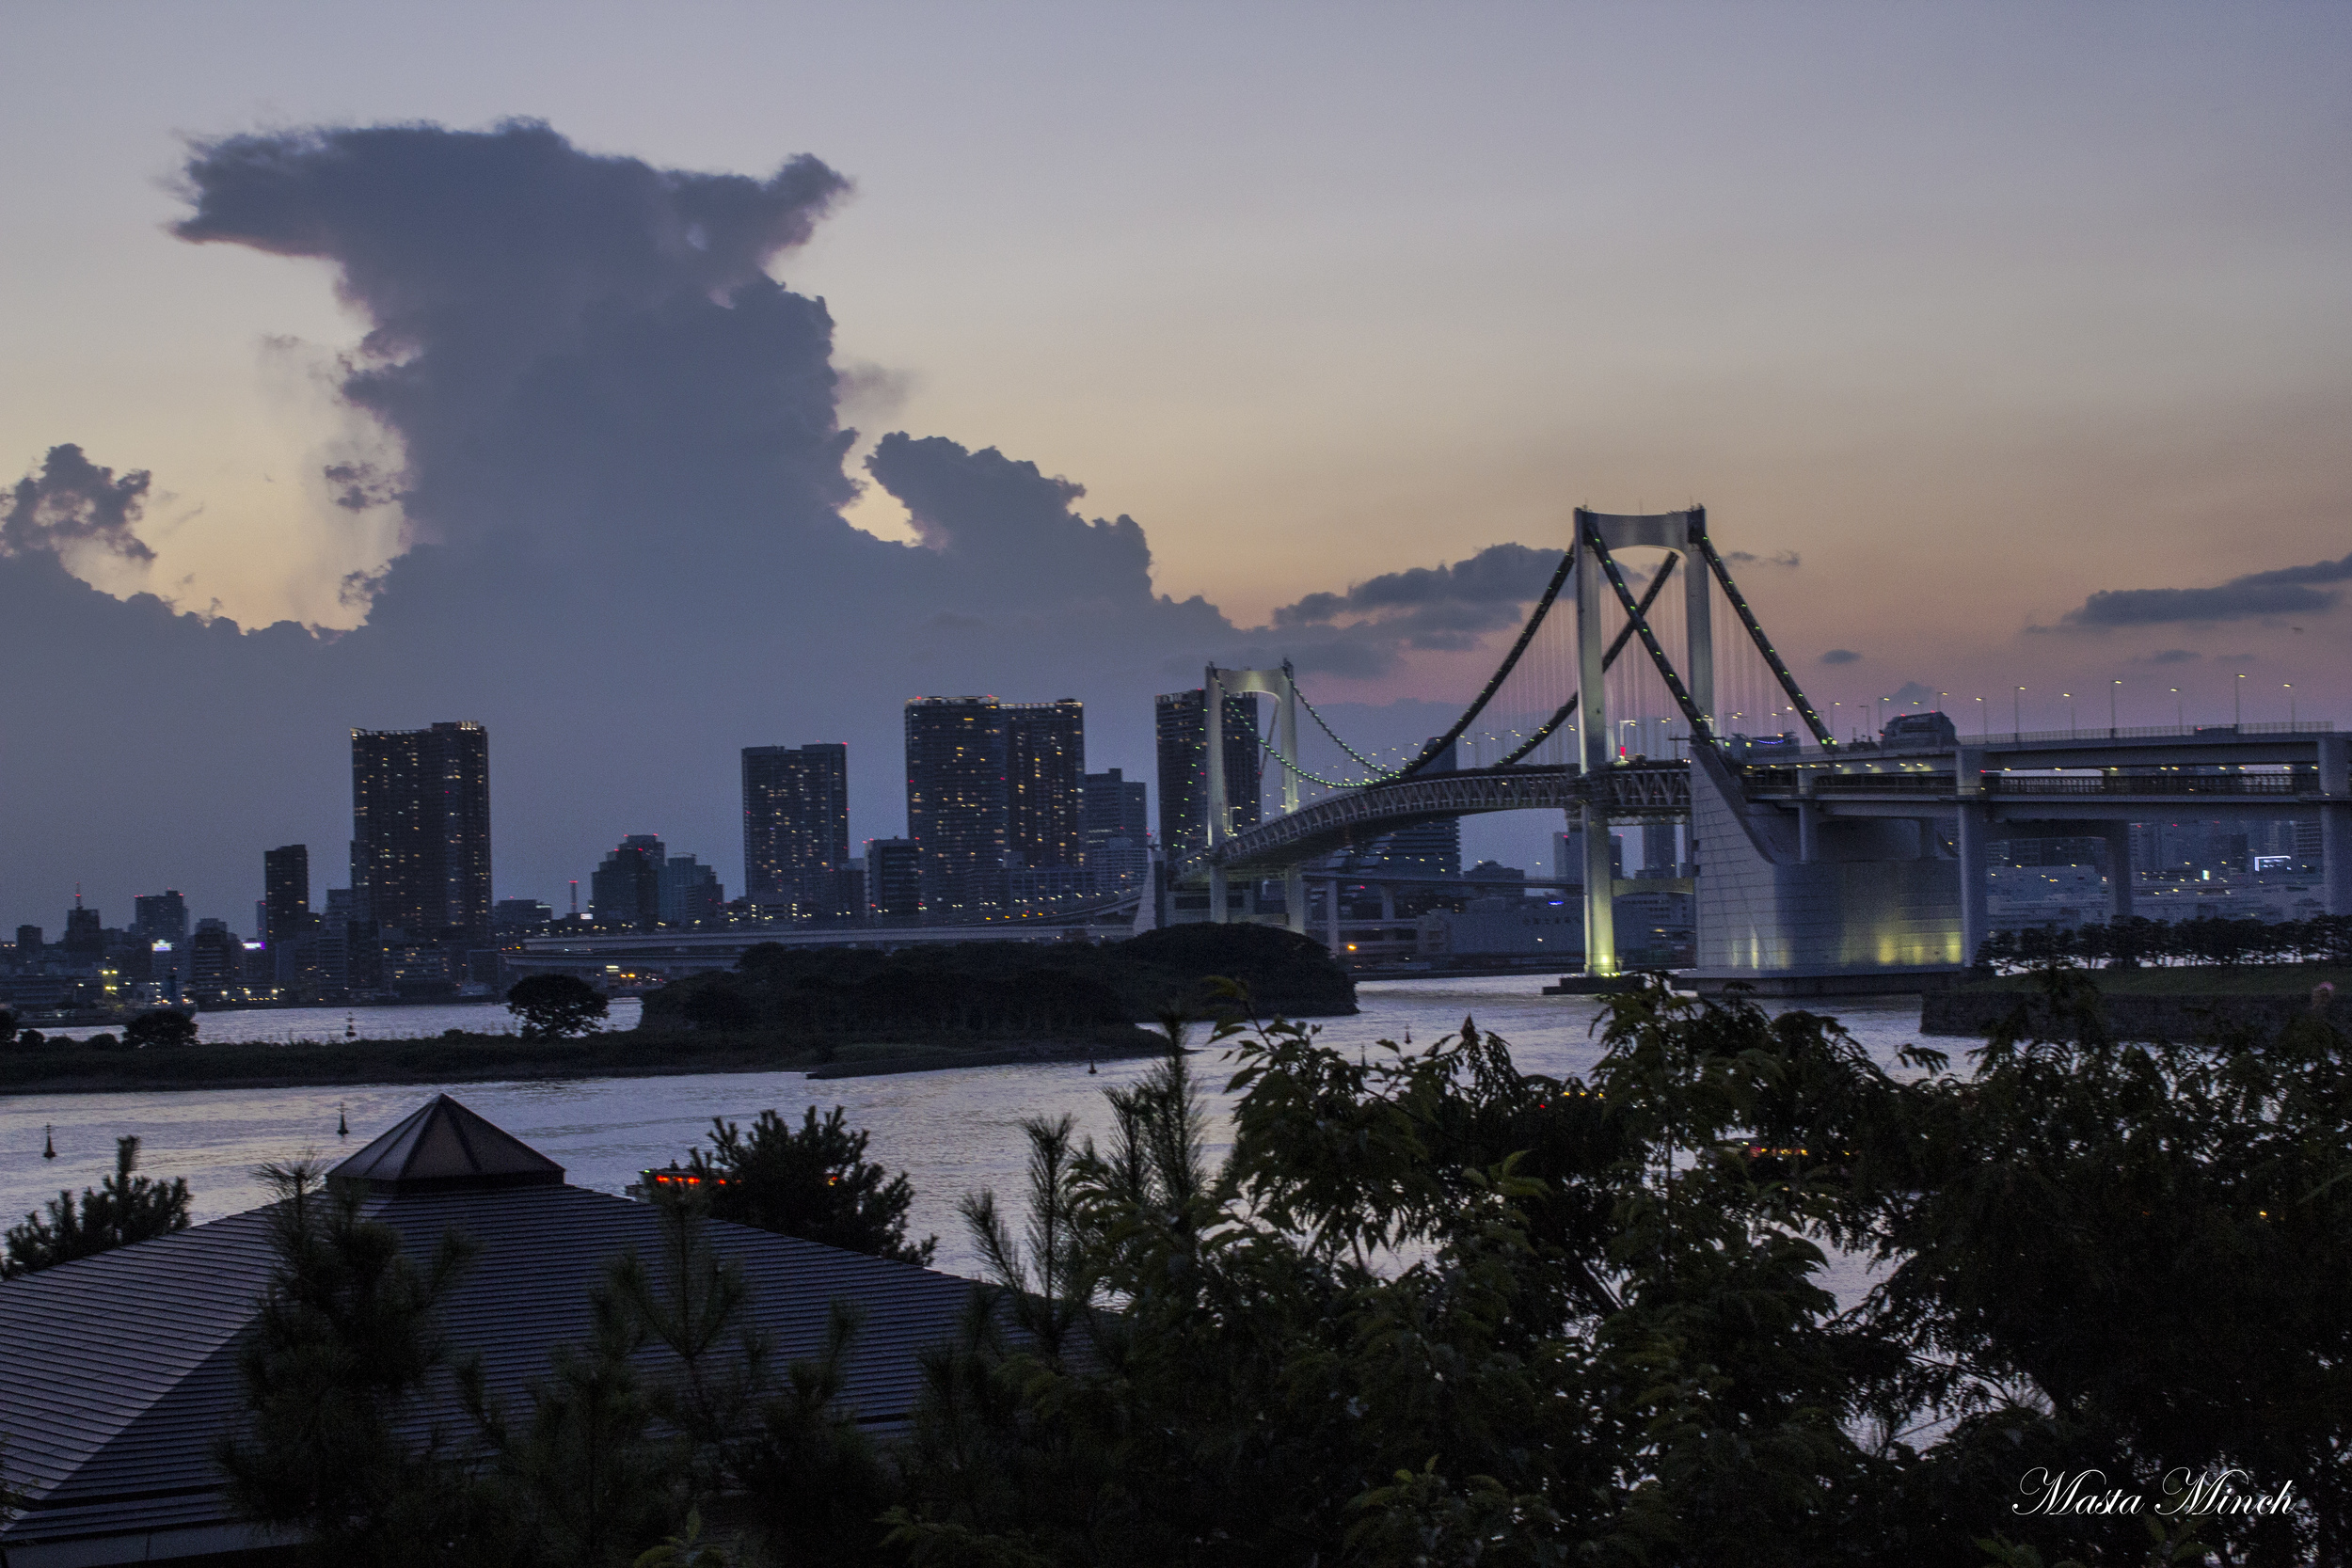 The evening view of Tokyo from Diver City.